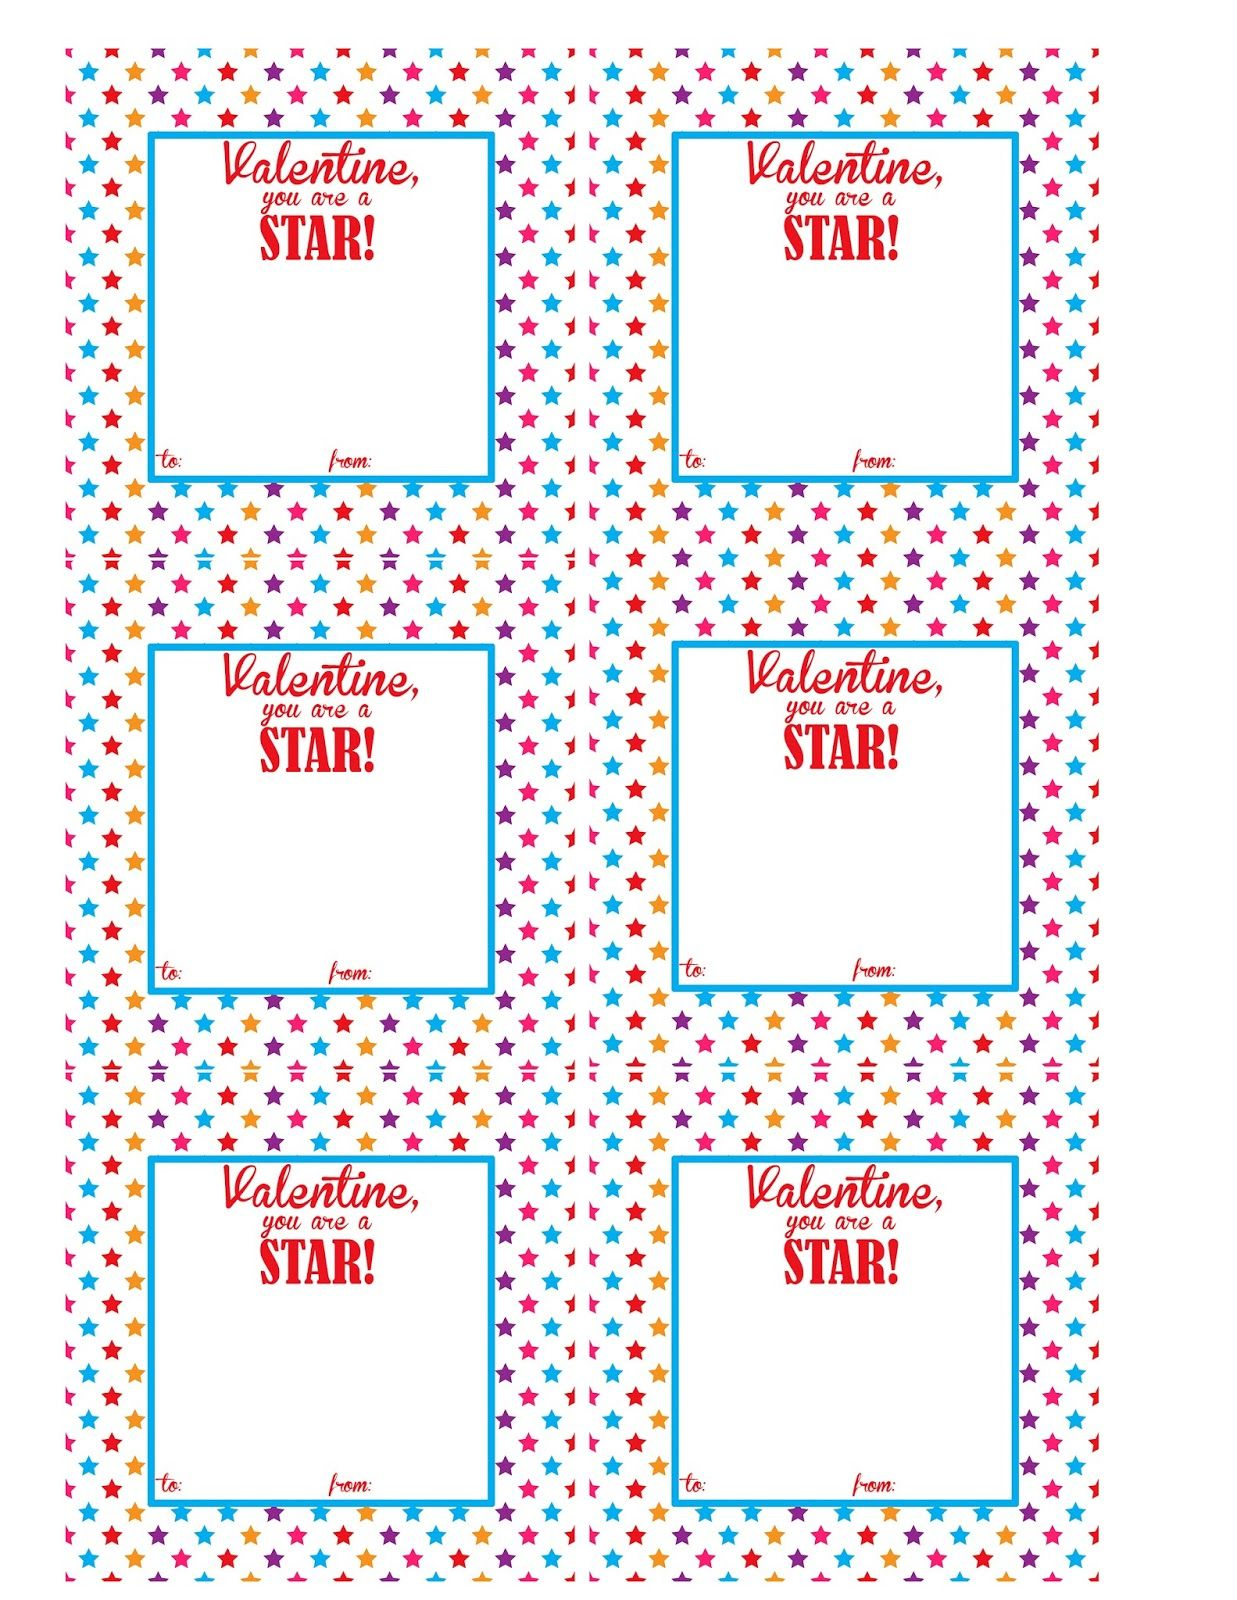 picture regarding Starburst Valentine Printable identified as Starburst Valentine Designs Totally free Printable Preschool